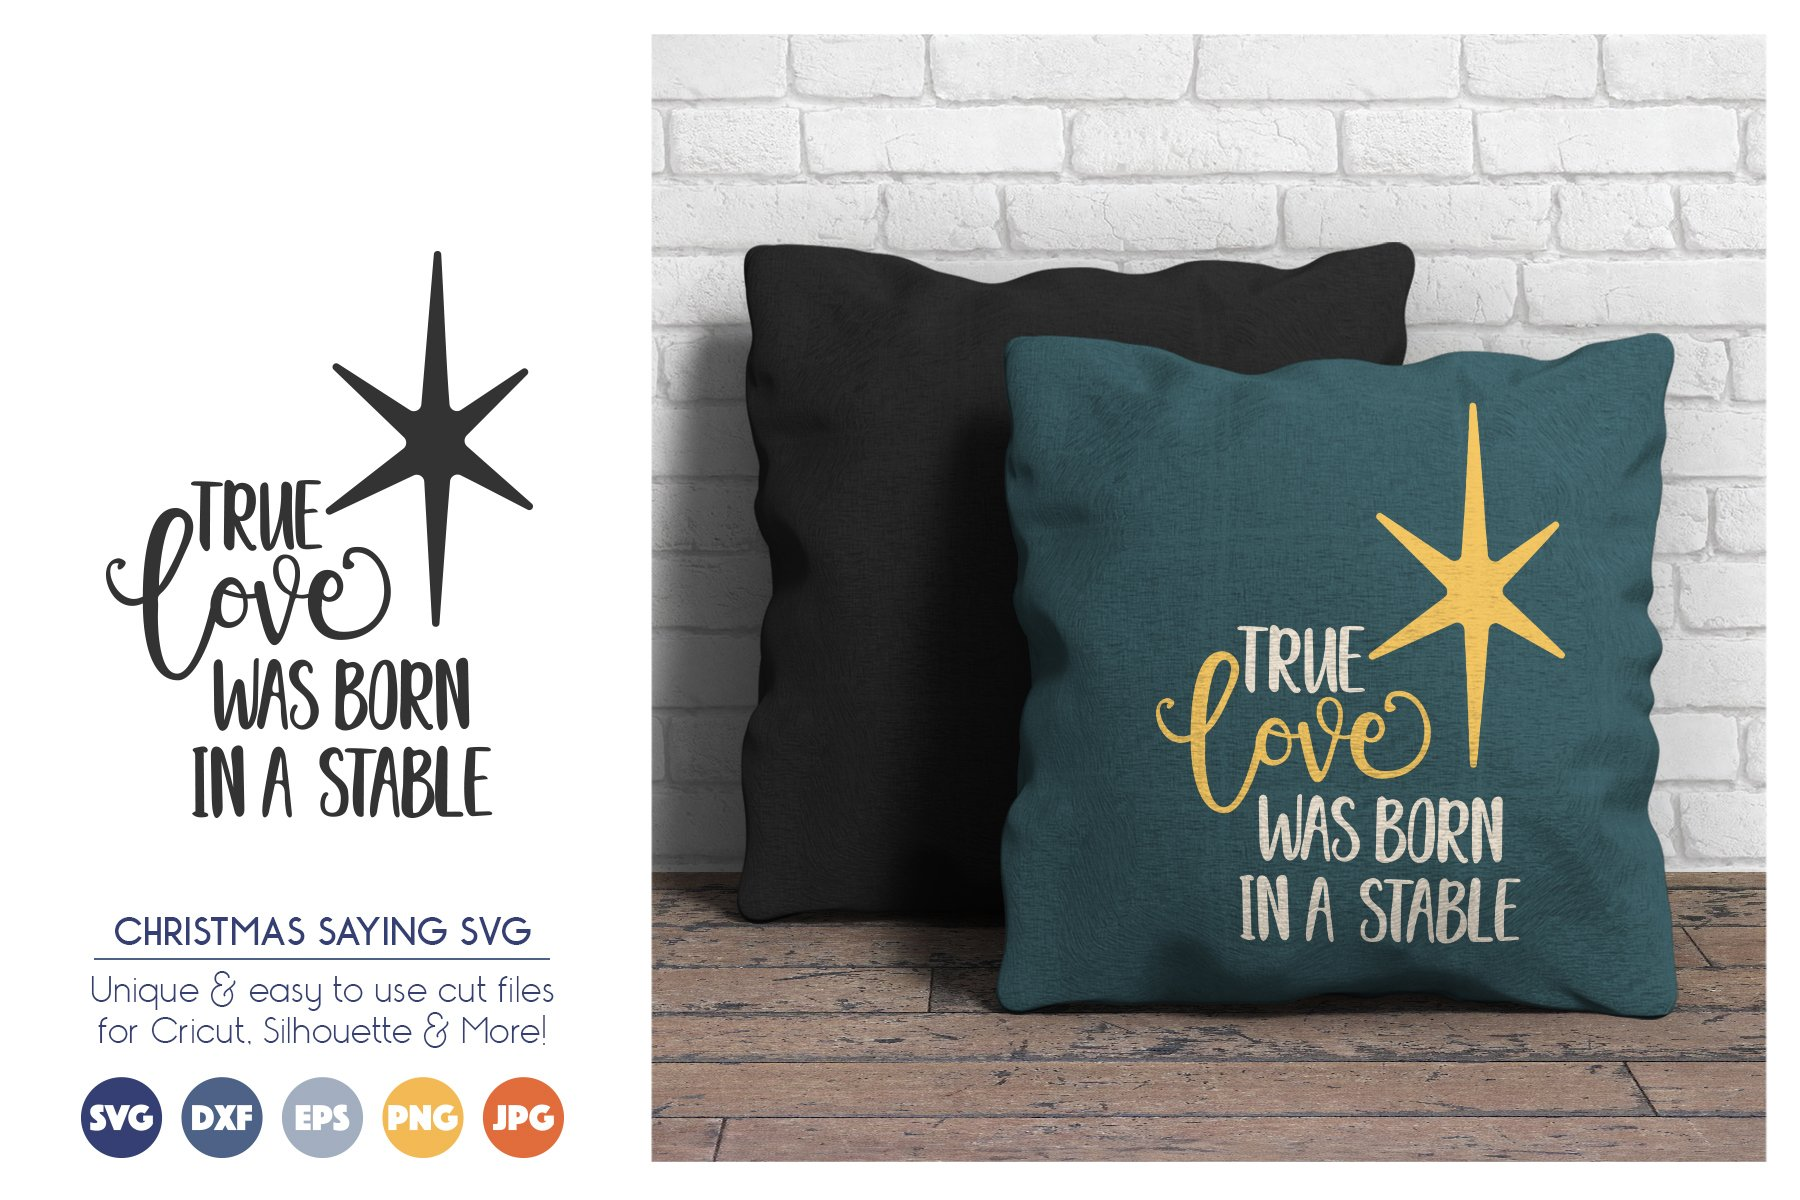 Christmas SVG Files - True Love Was Born in a Stable example image 1